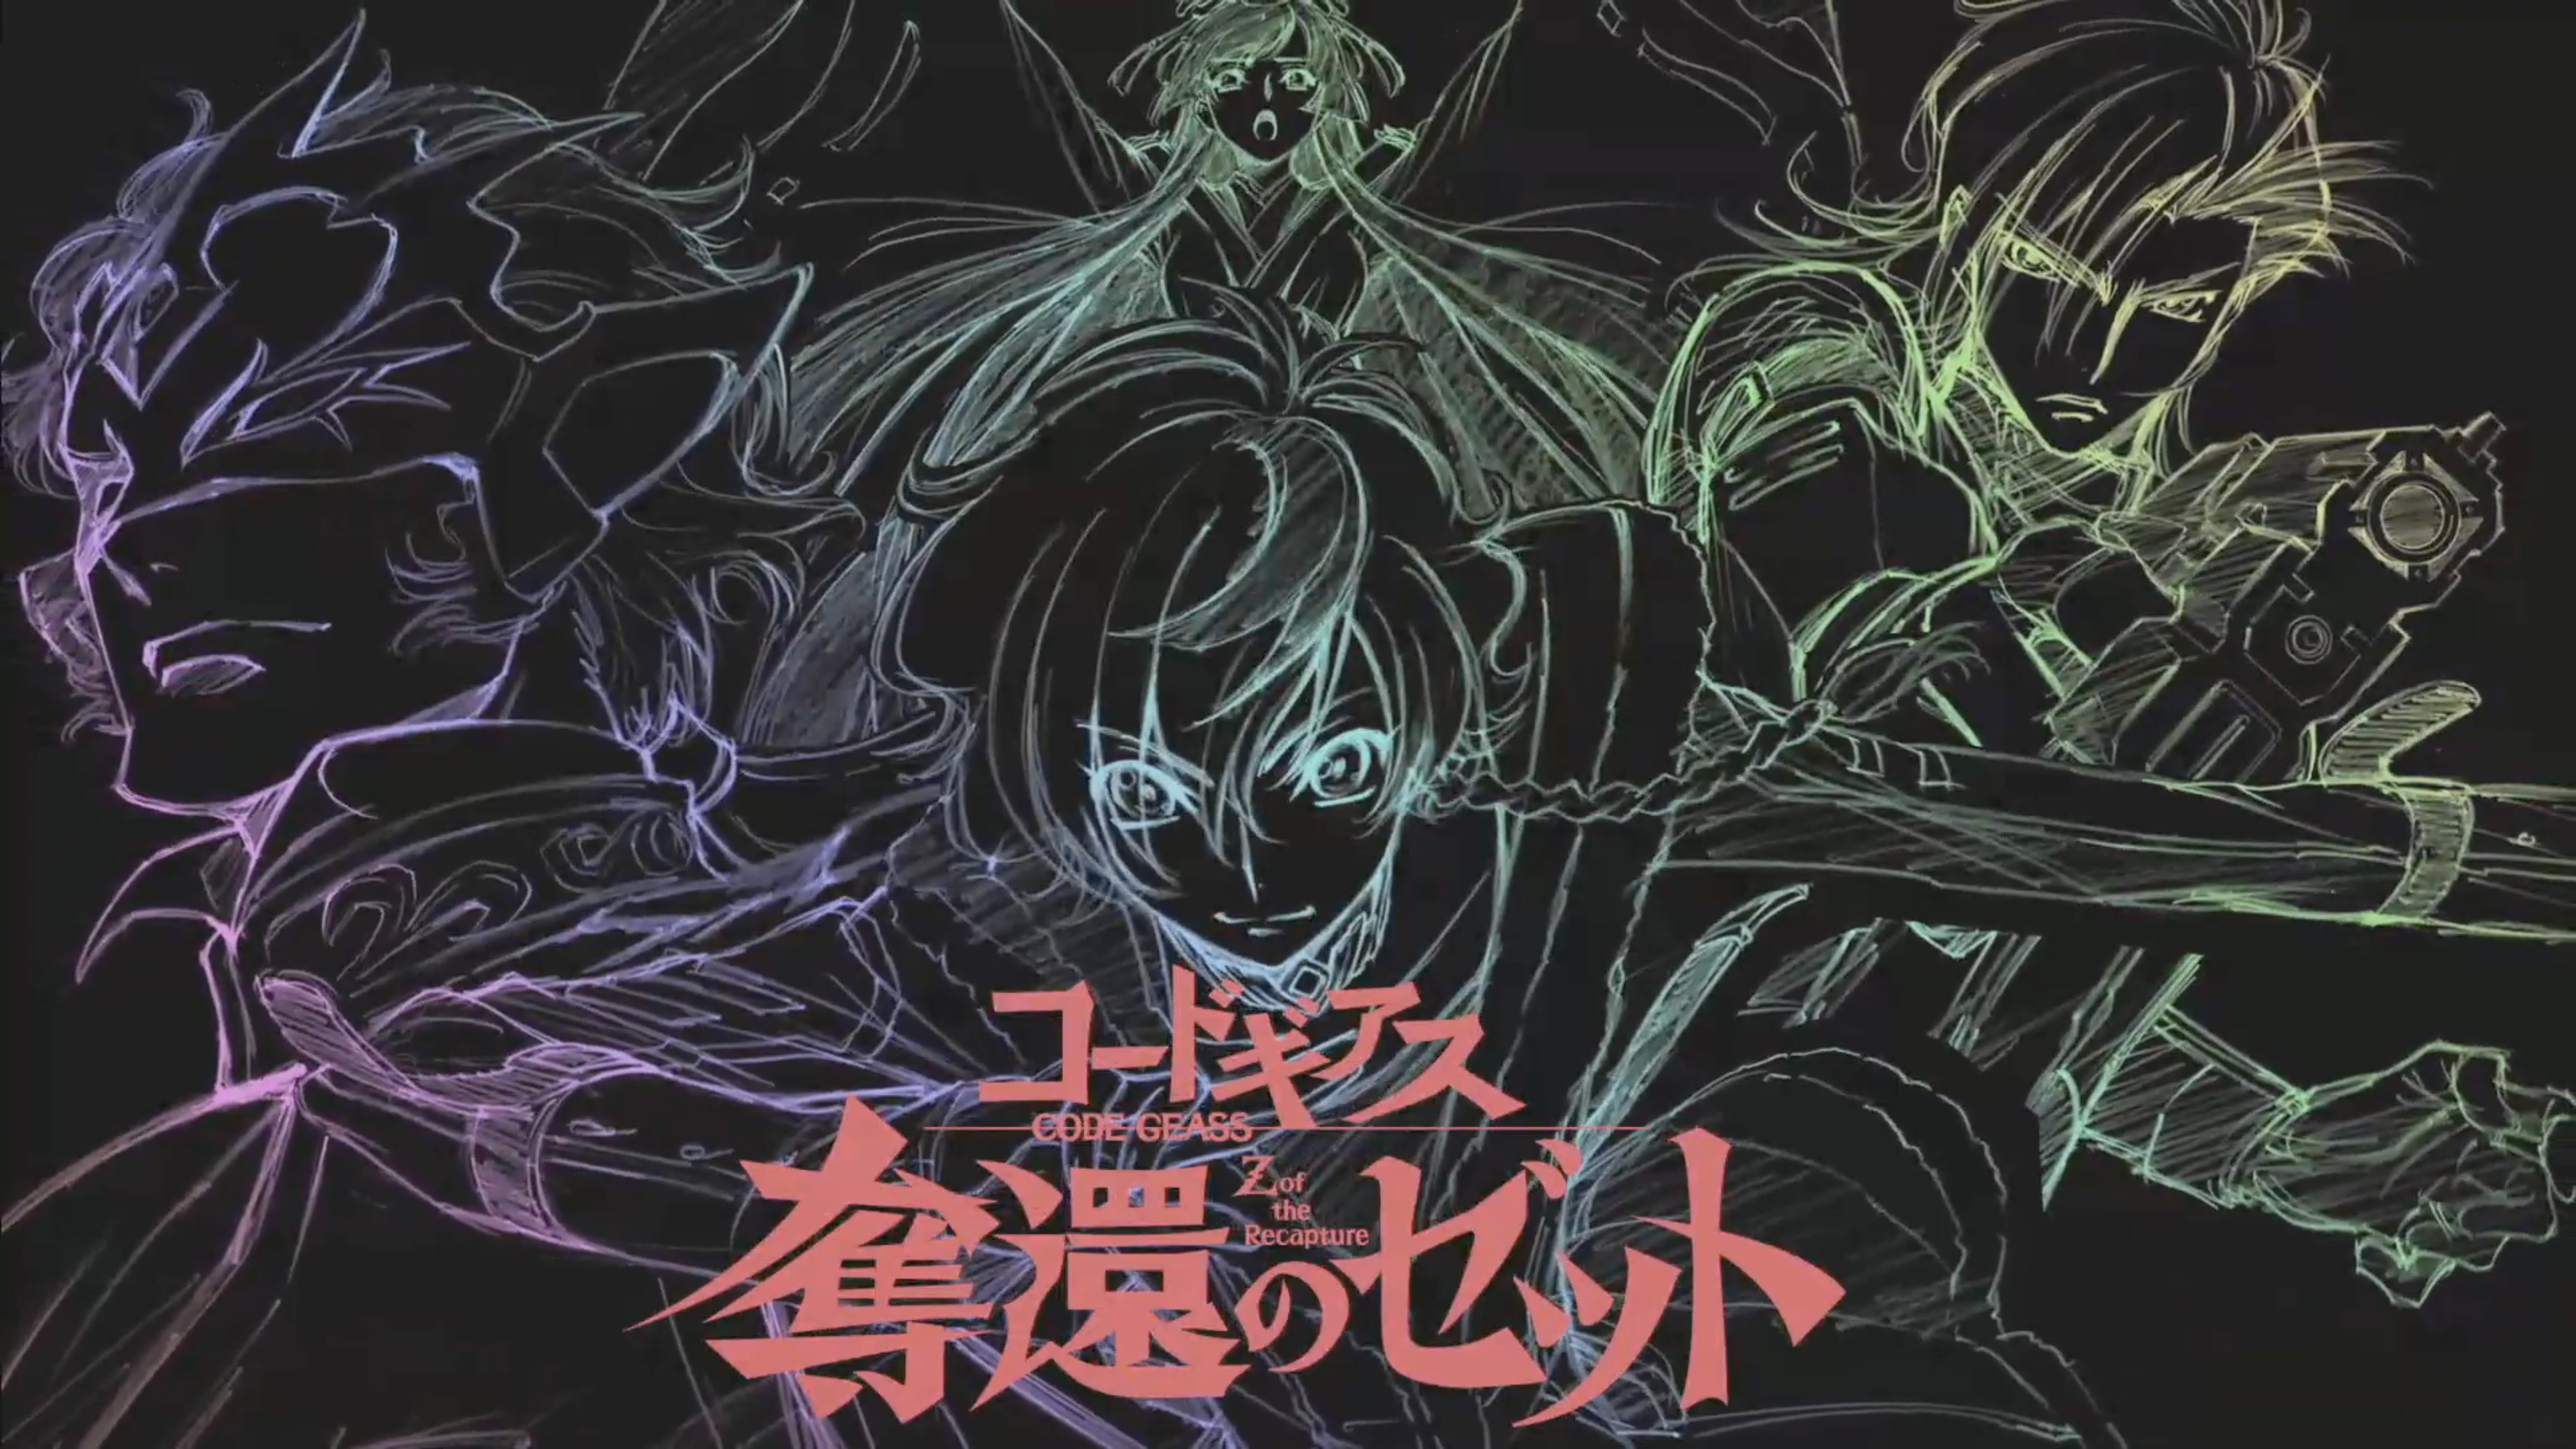 Gode Geass: Z of the Recapture